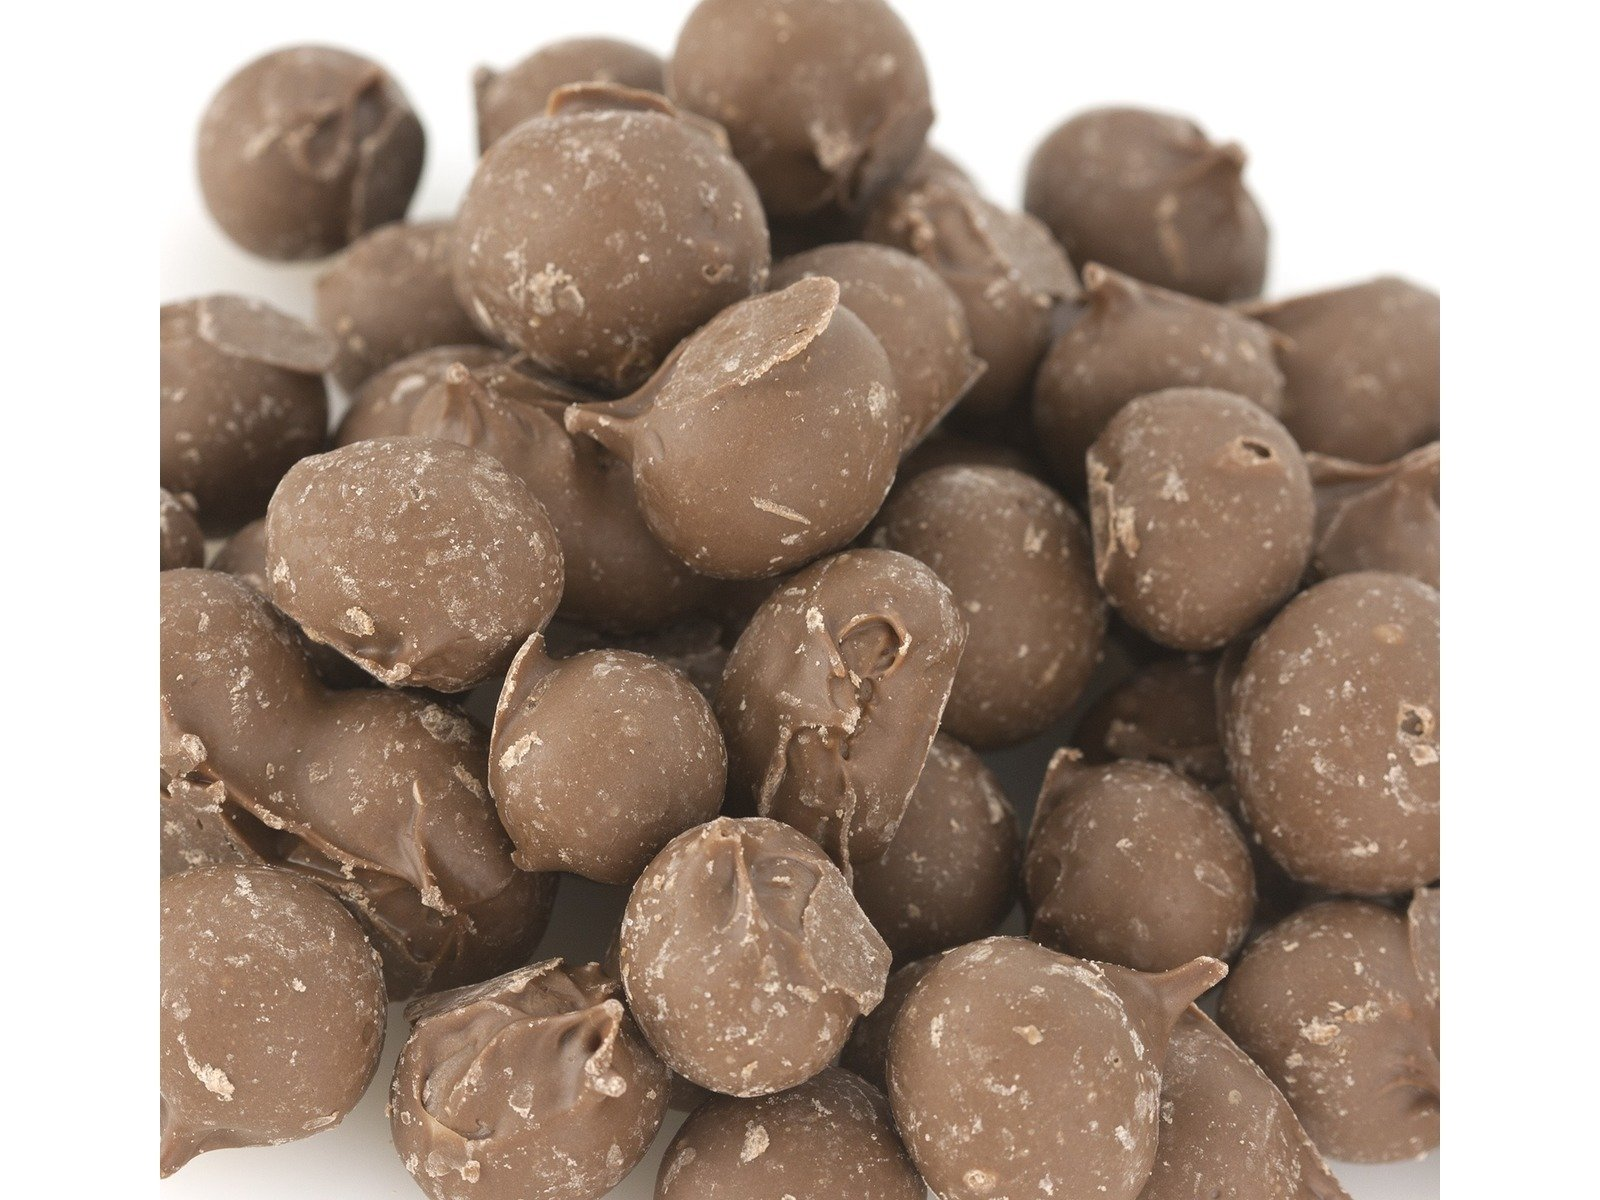 Double Dipped Peanuts Milk Chocolate Covered Peanuts 2 pounds